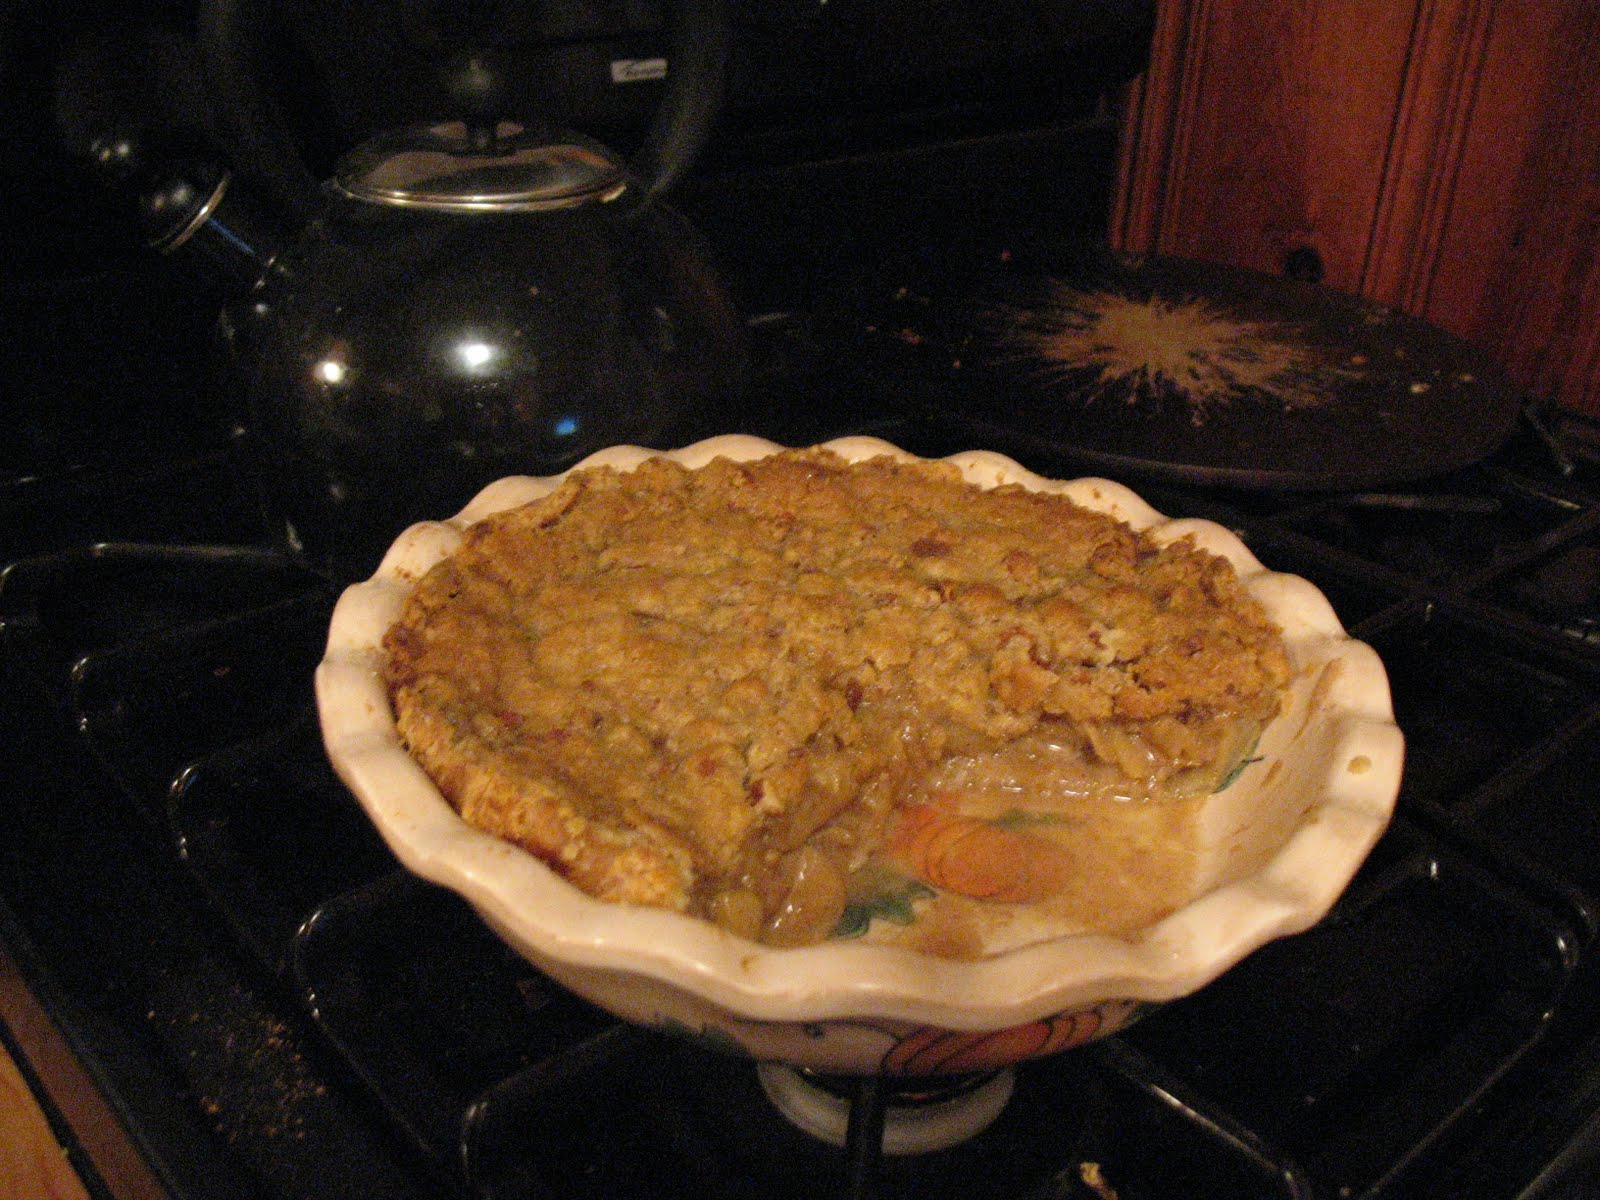 Sherry Starts Cooking: (The Big) Apple Crumble Pie